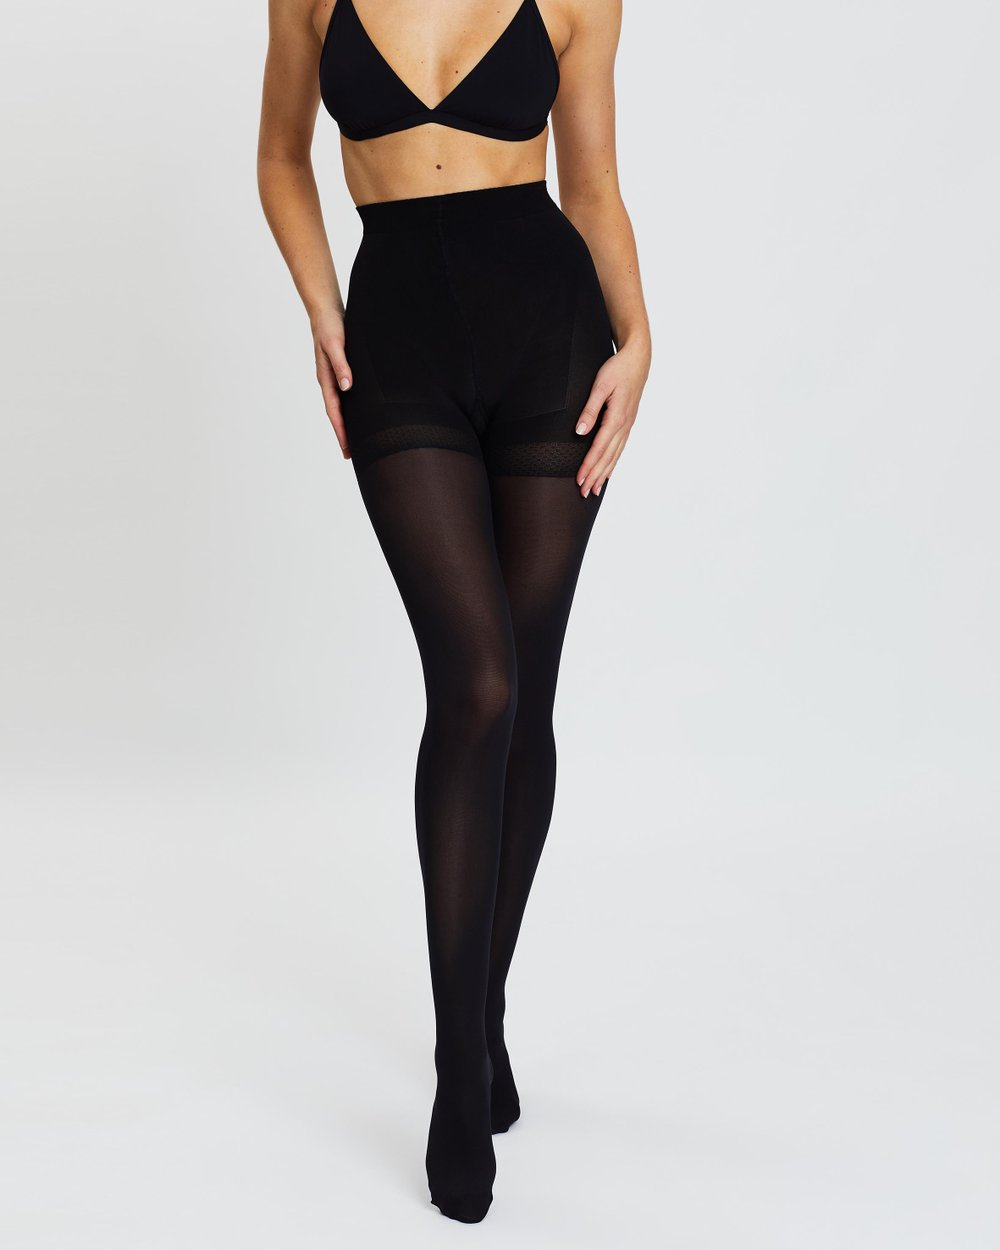 West Loop Shaping Tights Control Top Mid-rise Black Pick Your Size